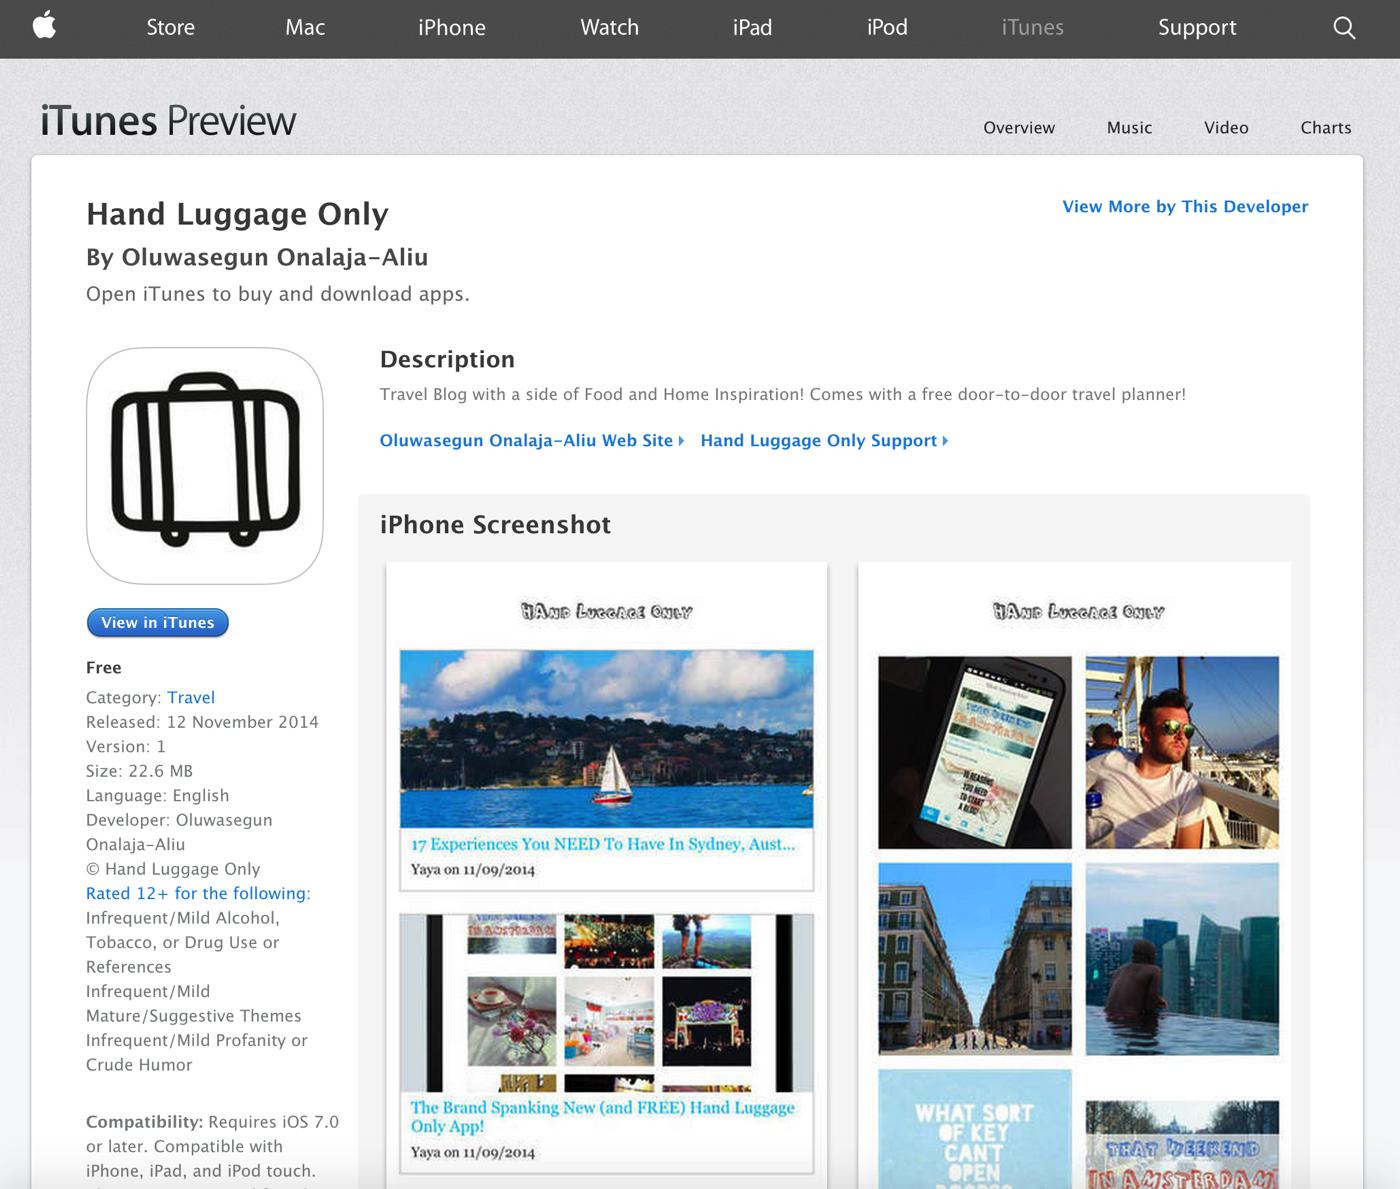 The Hand Luggage Only app is now available on iTunes! - Hand Luggage